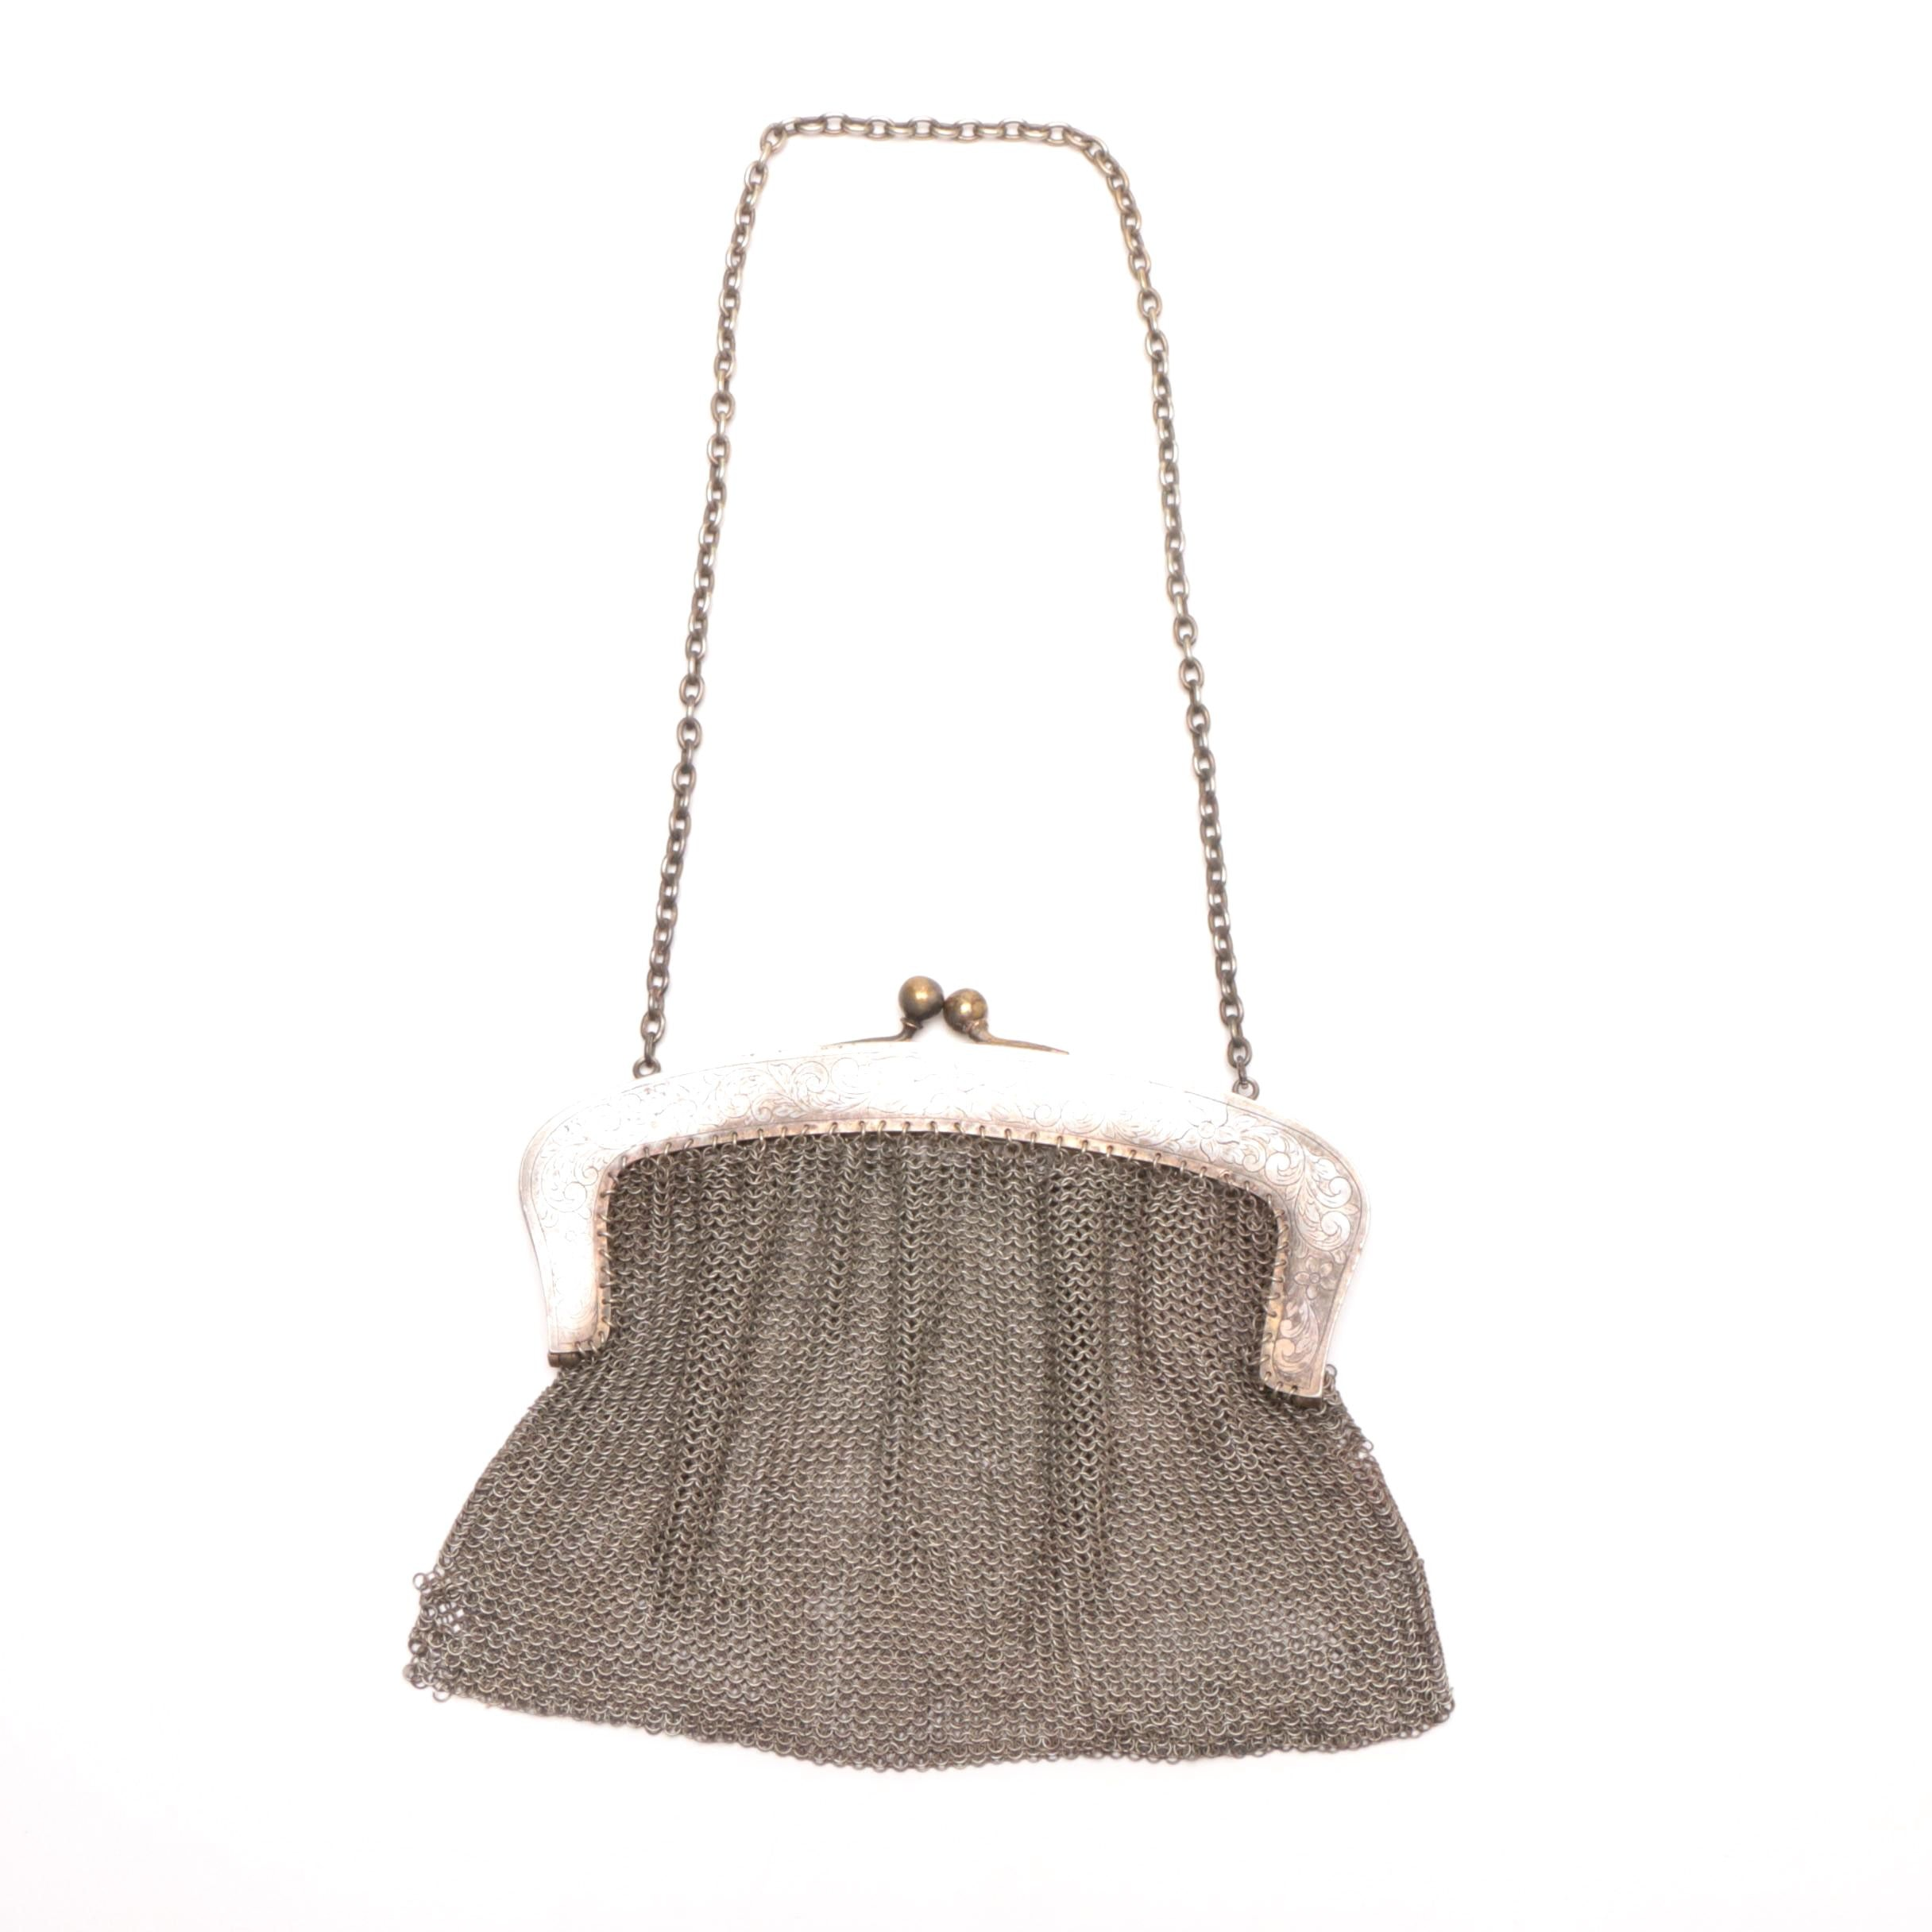 Early 20th Century Silver Plate Mesh Evening Bag